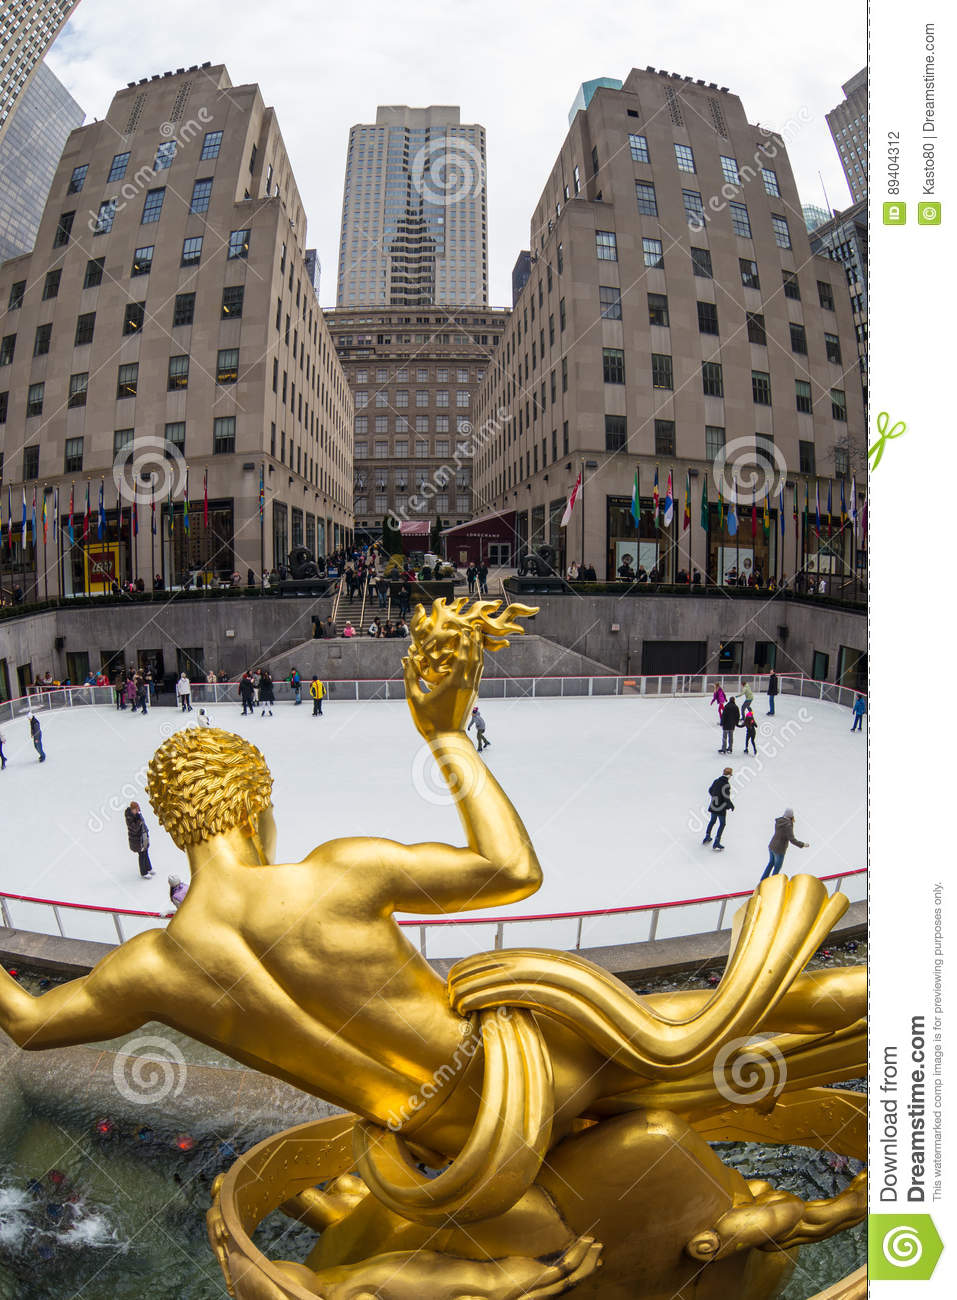 Patim a estátua do PROMETHEUS e de gelo Center dourados de Rockefeller rink, Manhattan, New York City, EUA